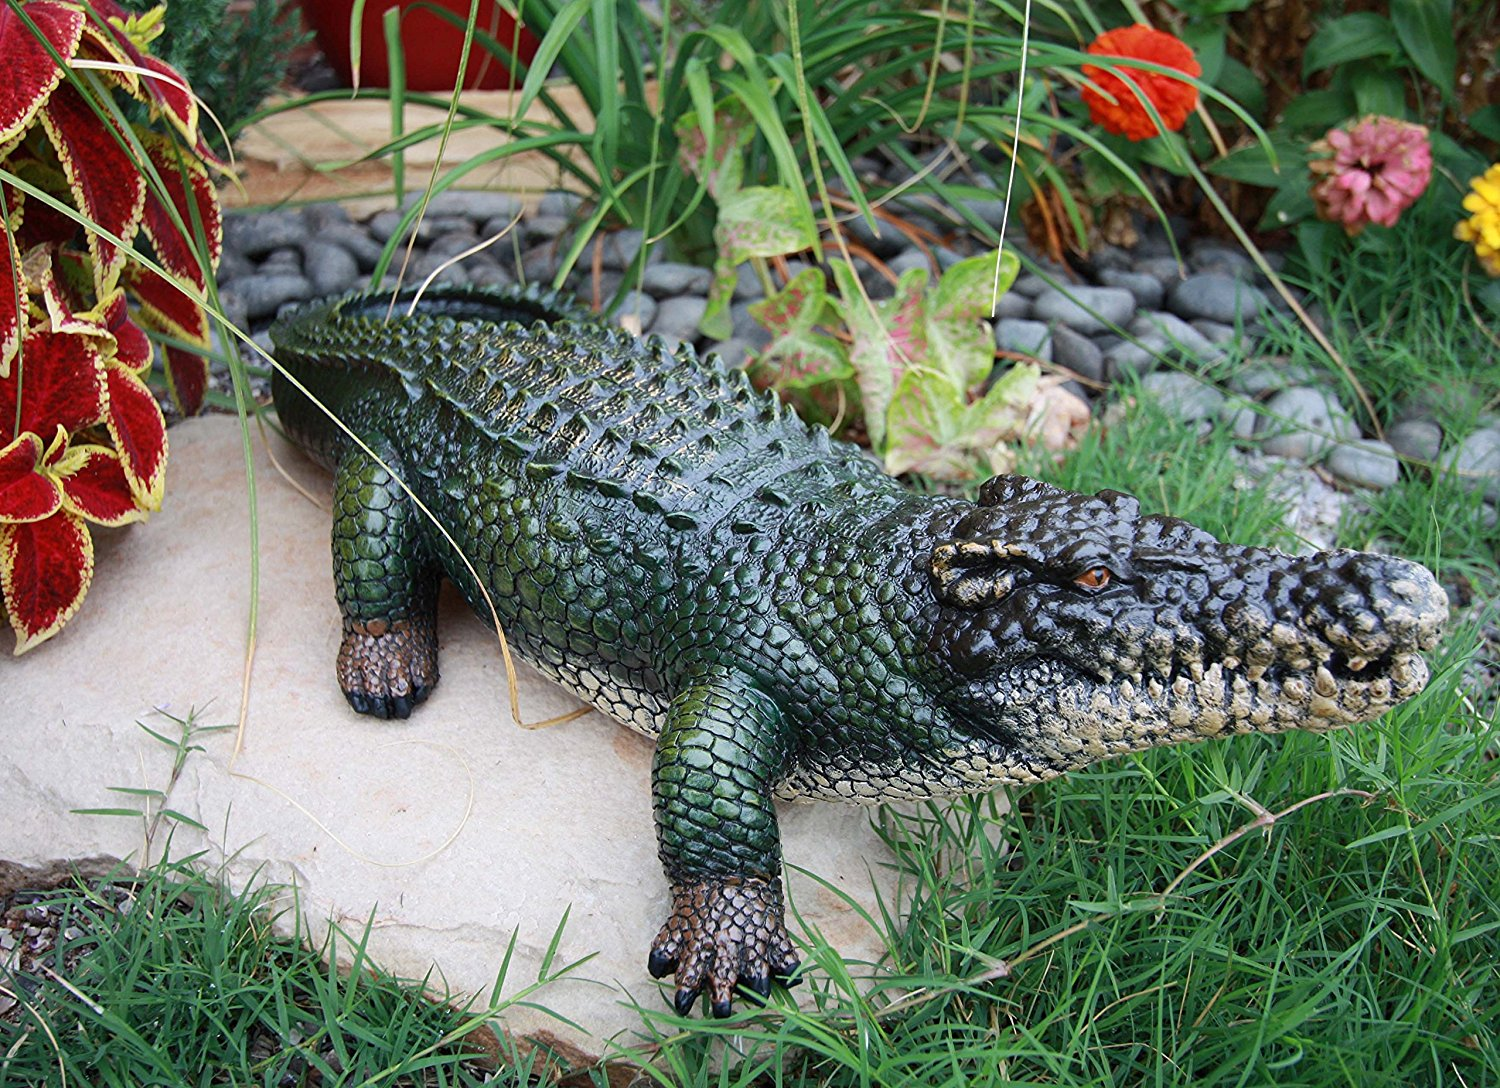 Atlantic Collectables Realistic Alligator Statue